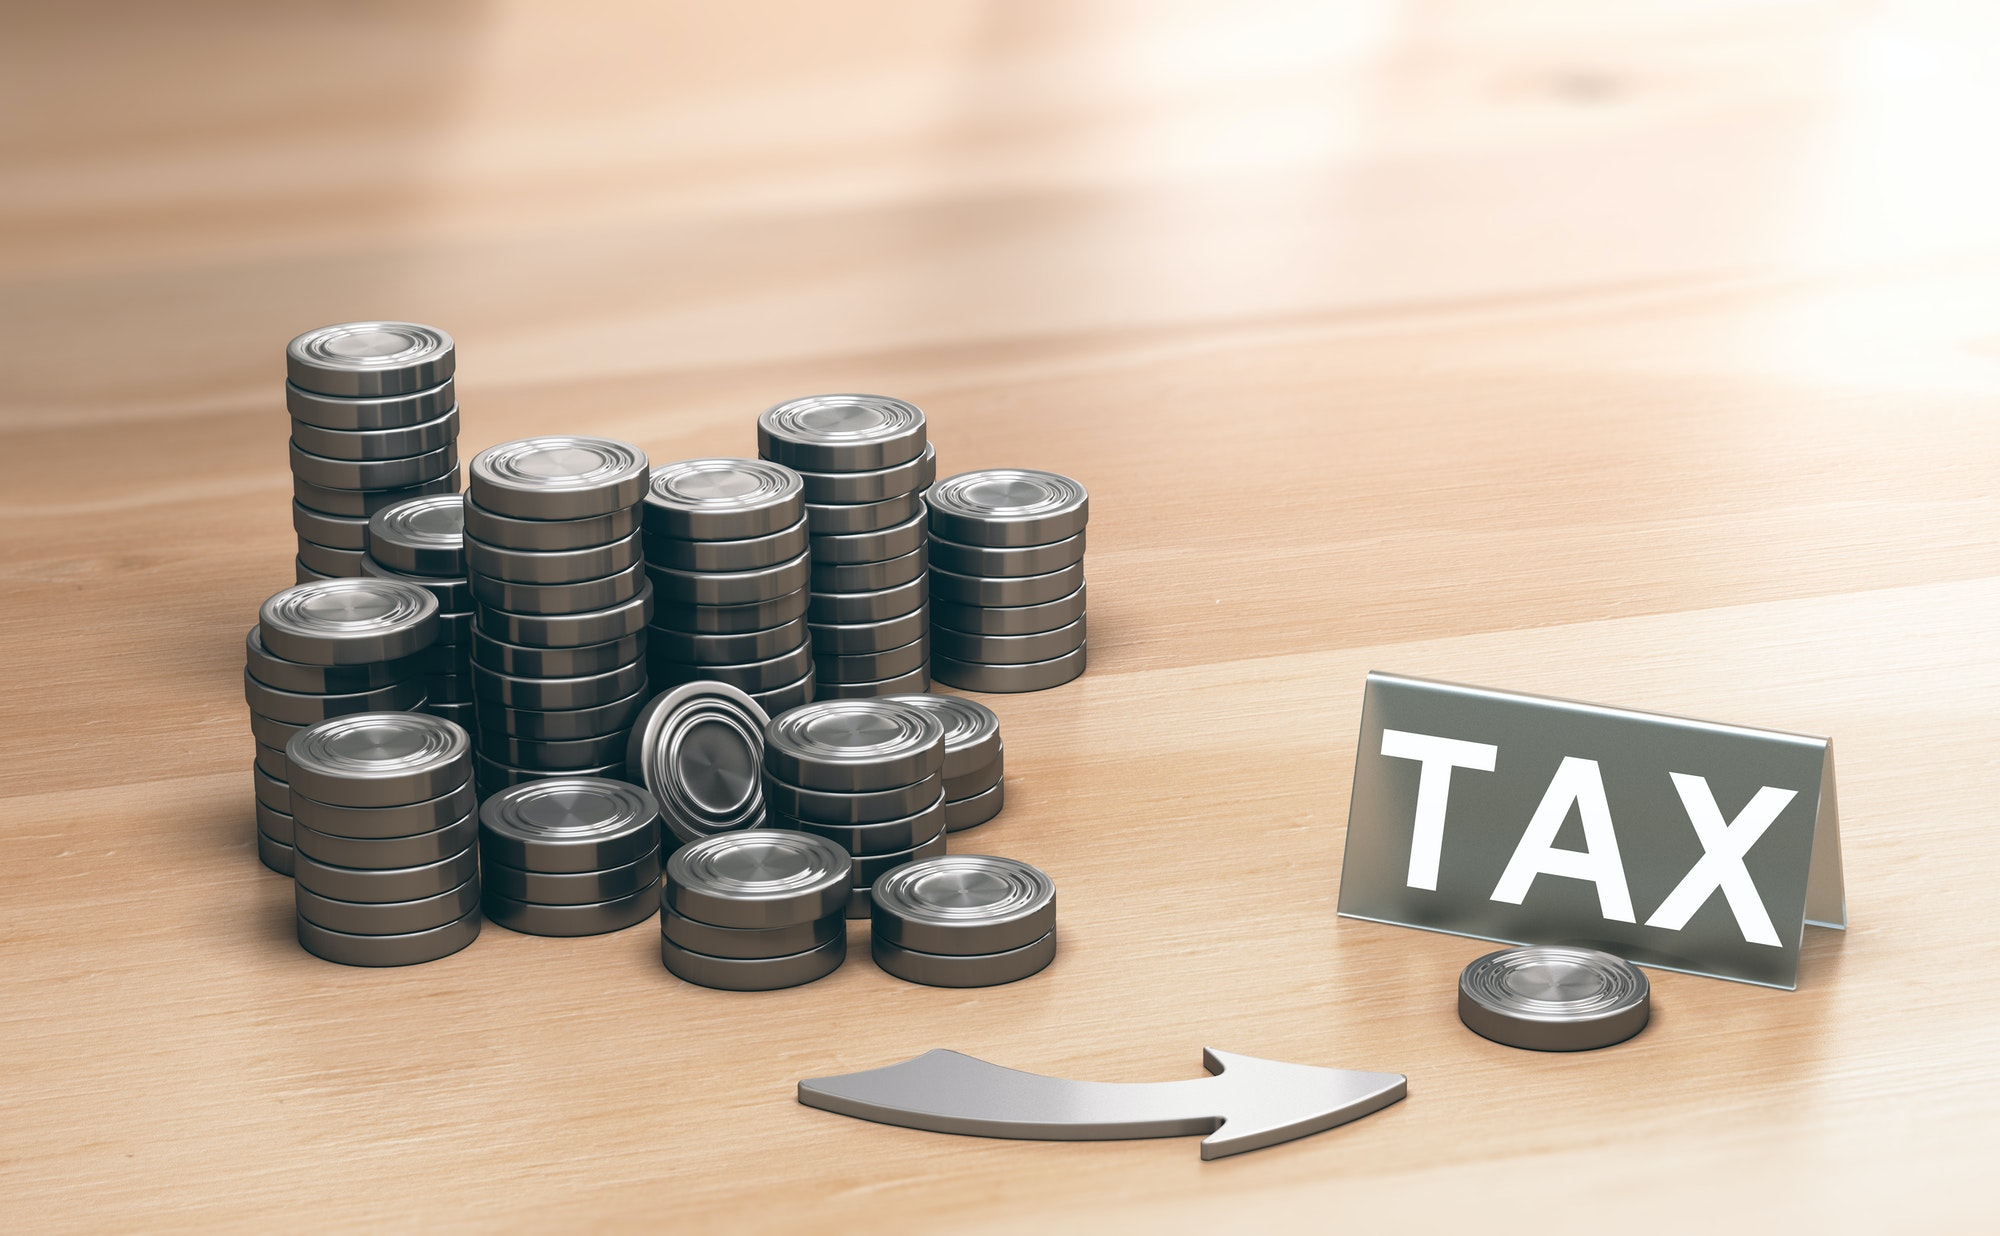 Financial Advisory, Corporate Tax Planning or Optimization